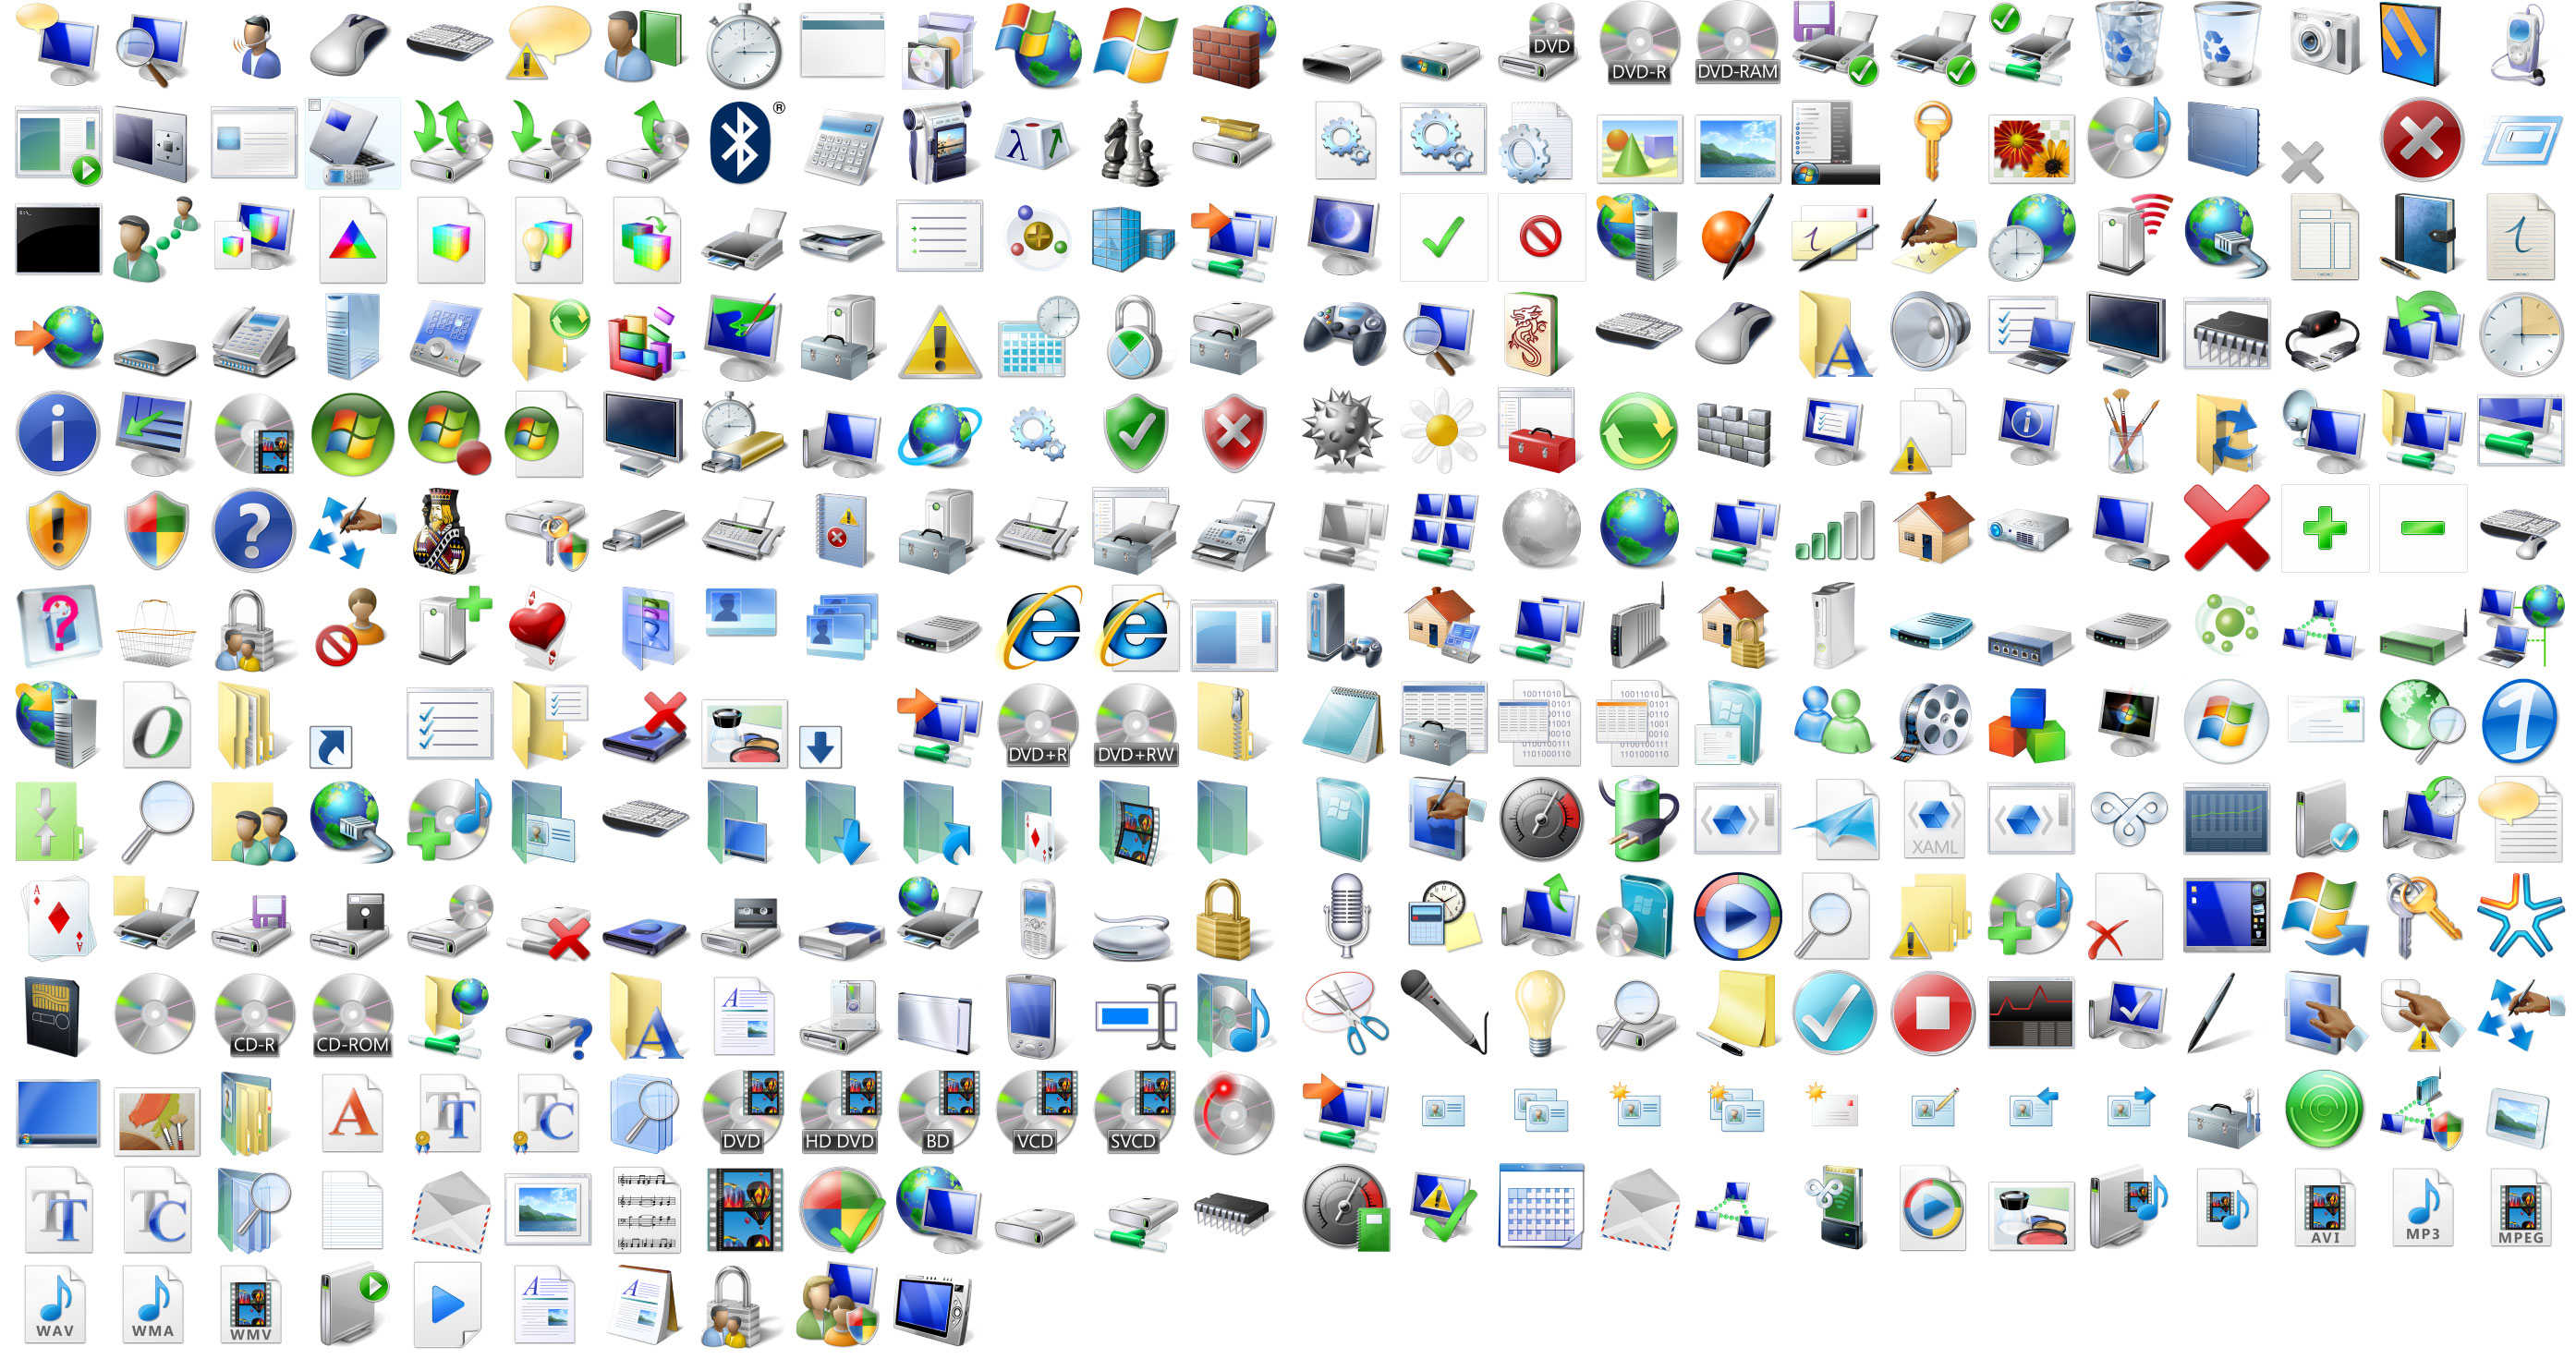 15 Windows Icons Free Download Images